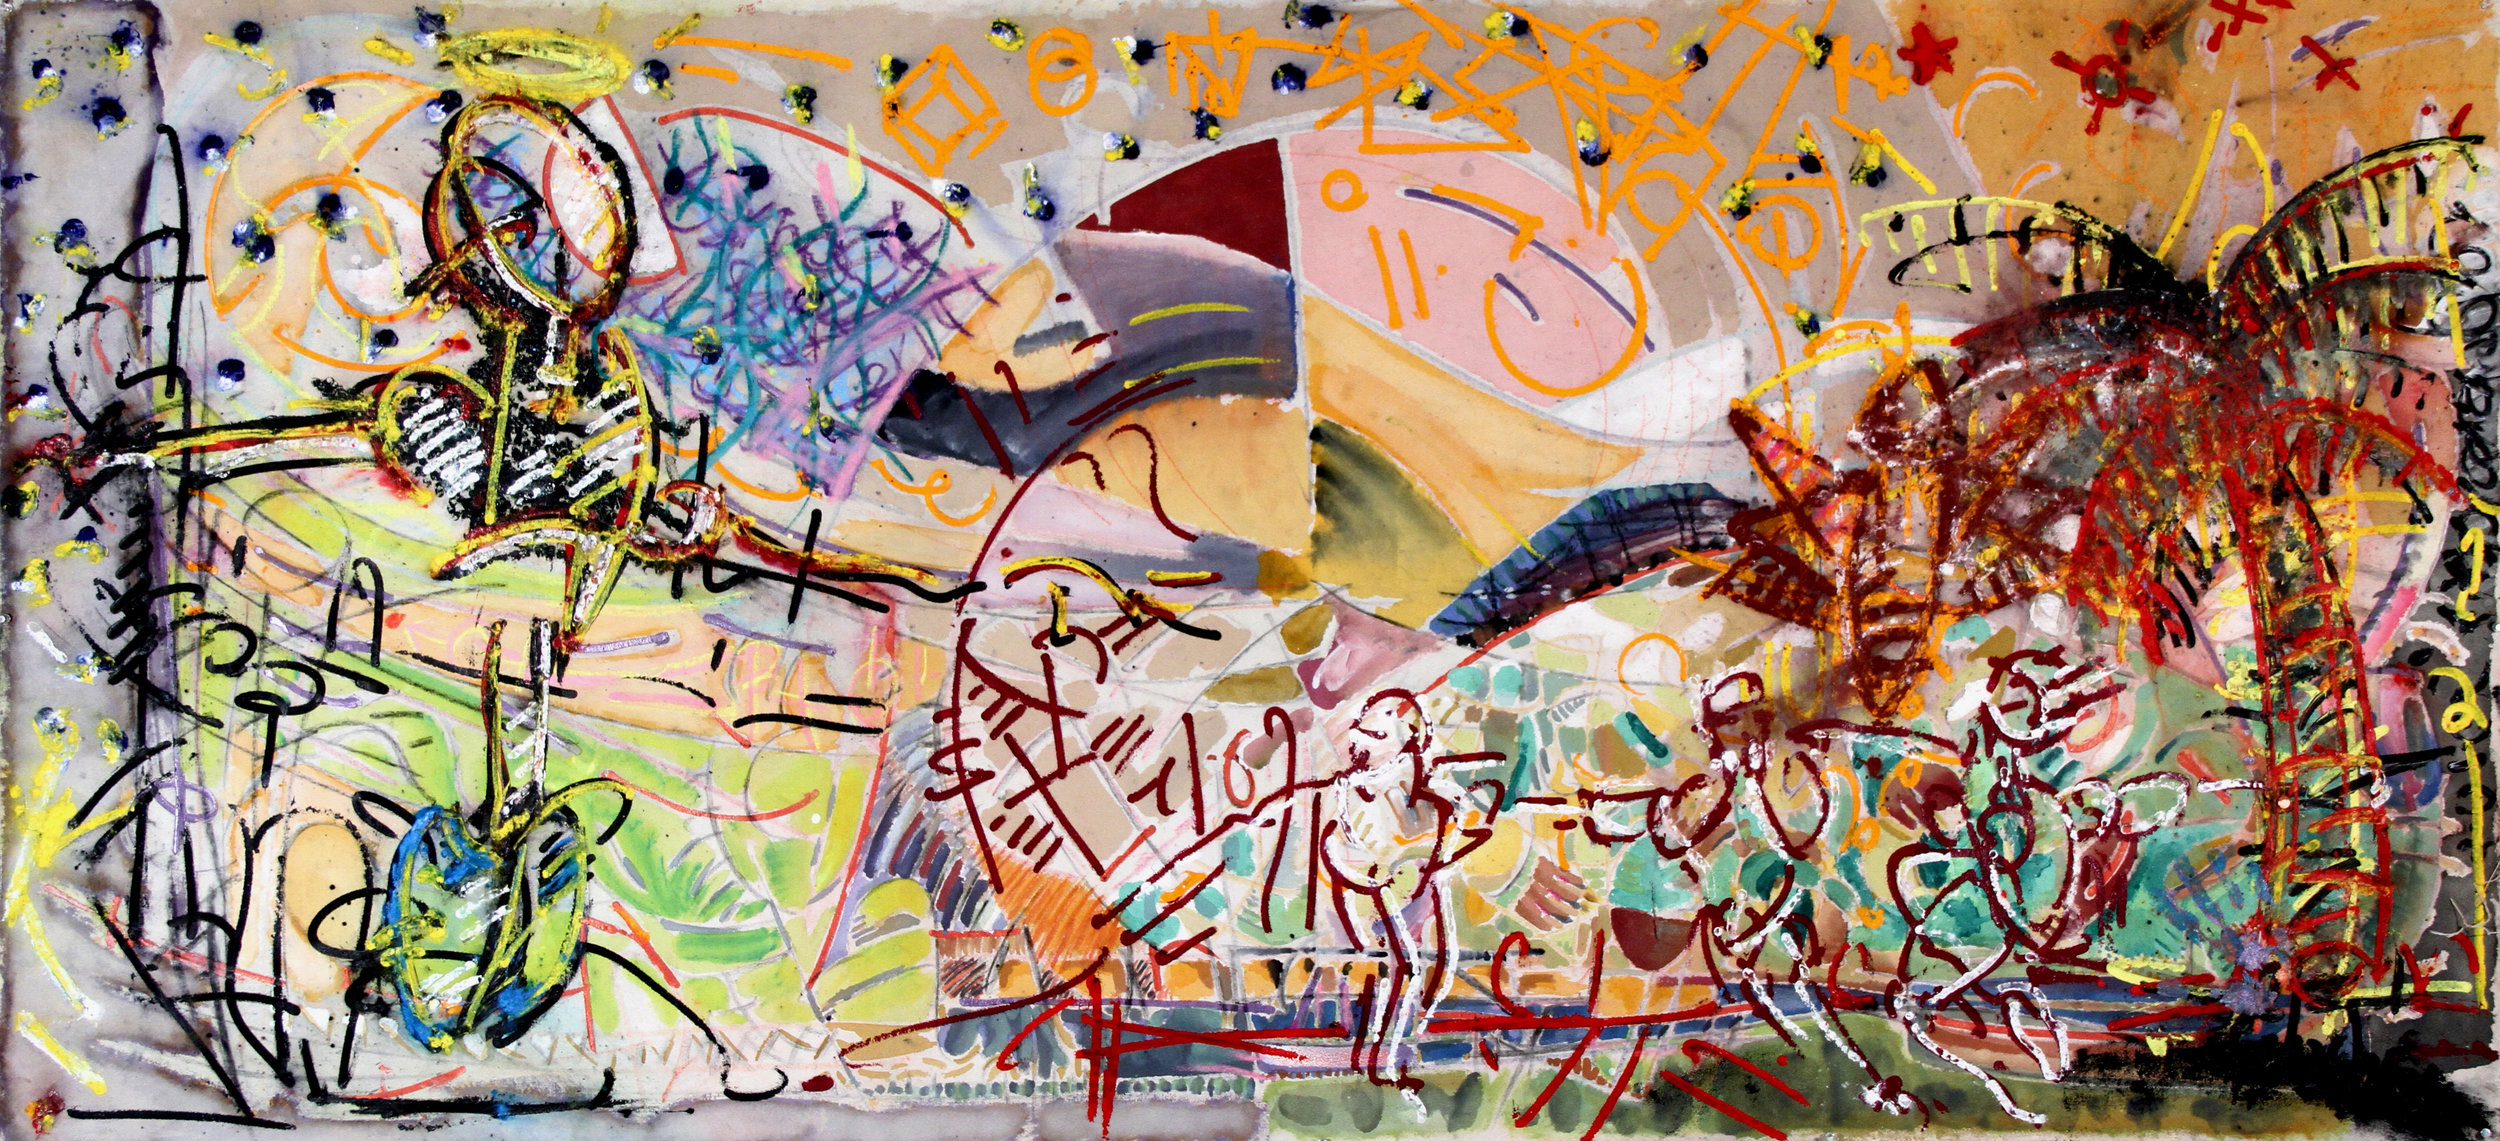 PARADISE LOST  Mixed Media on Canvas 45 x 91 inches (114 x 231 cm)